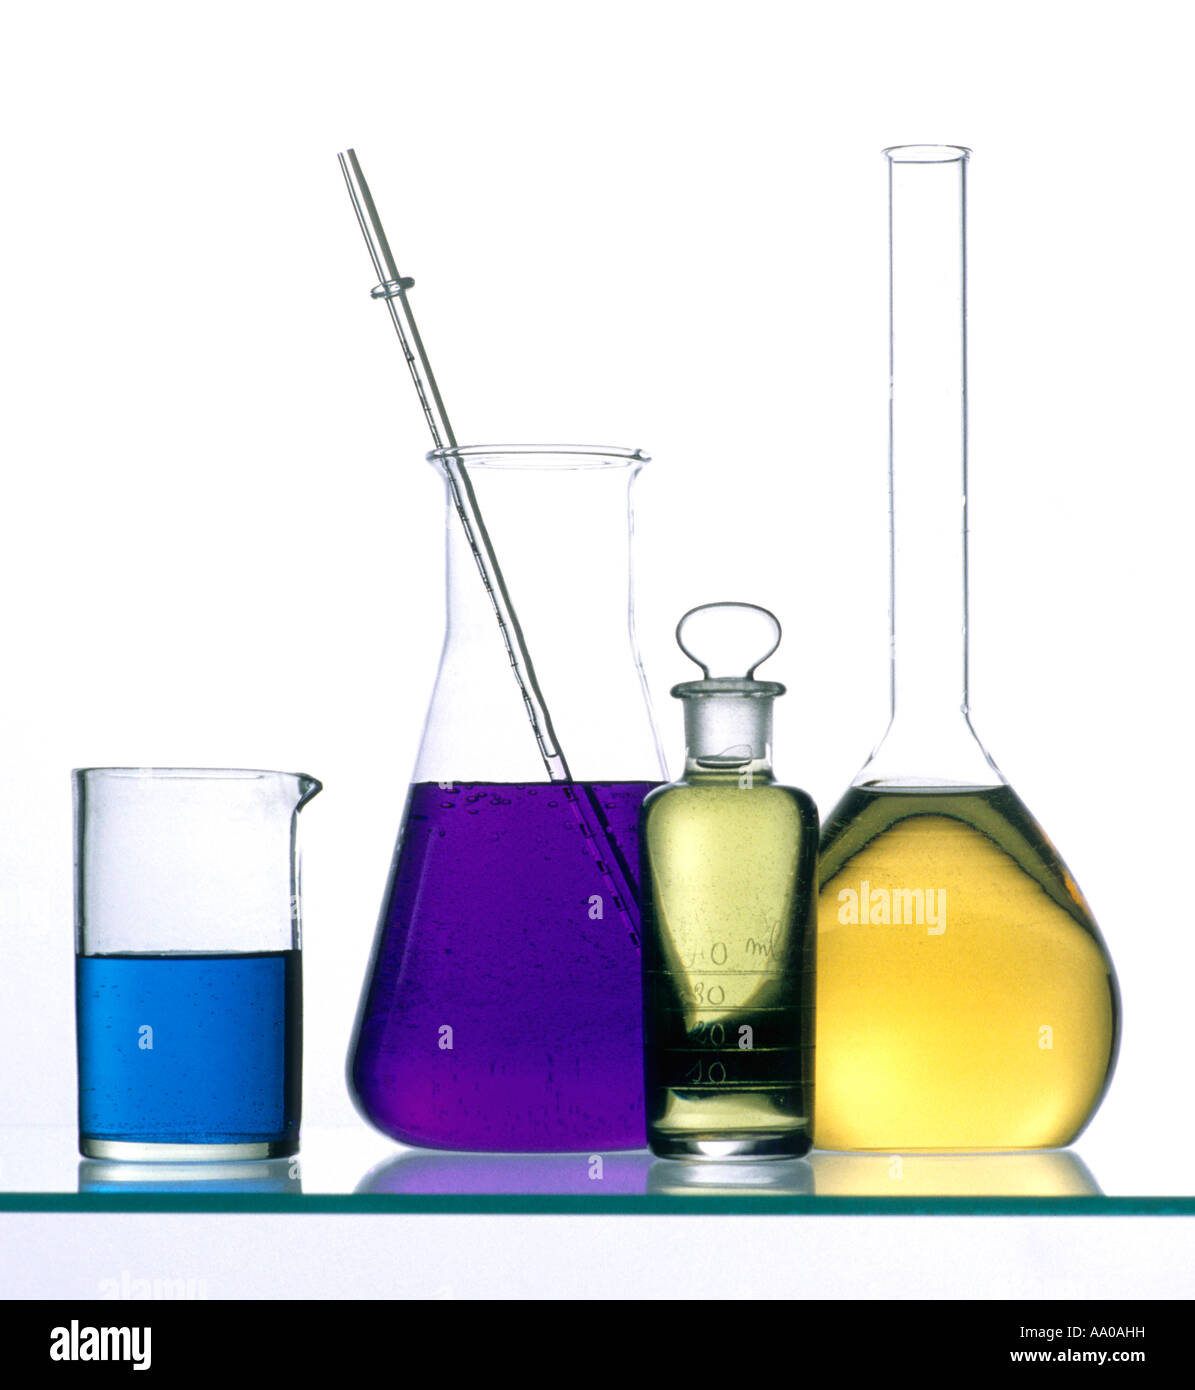 Laboratory - Chemistry Science lab equipment - Stock Image